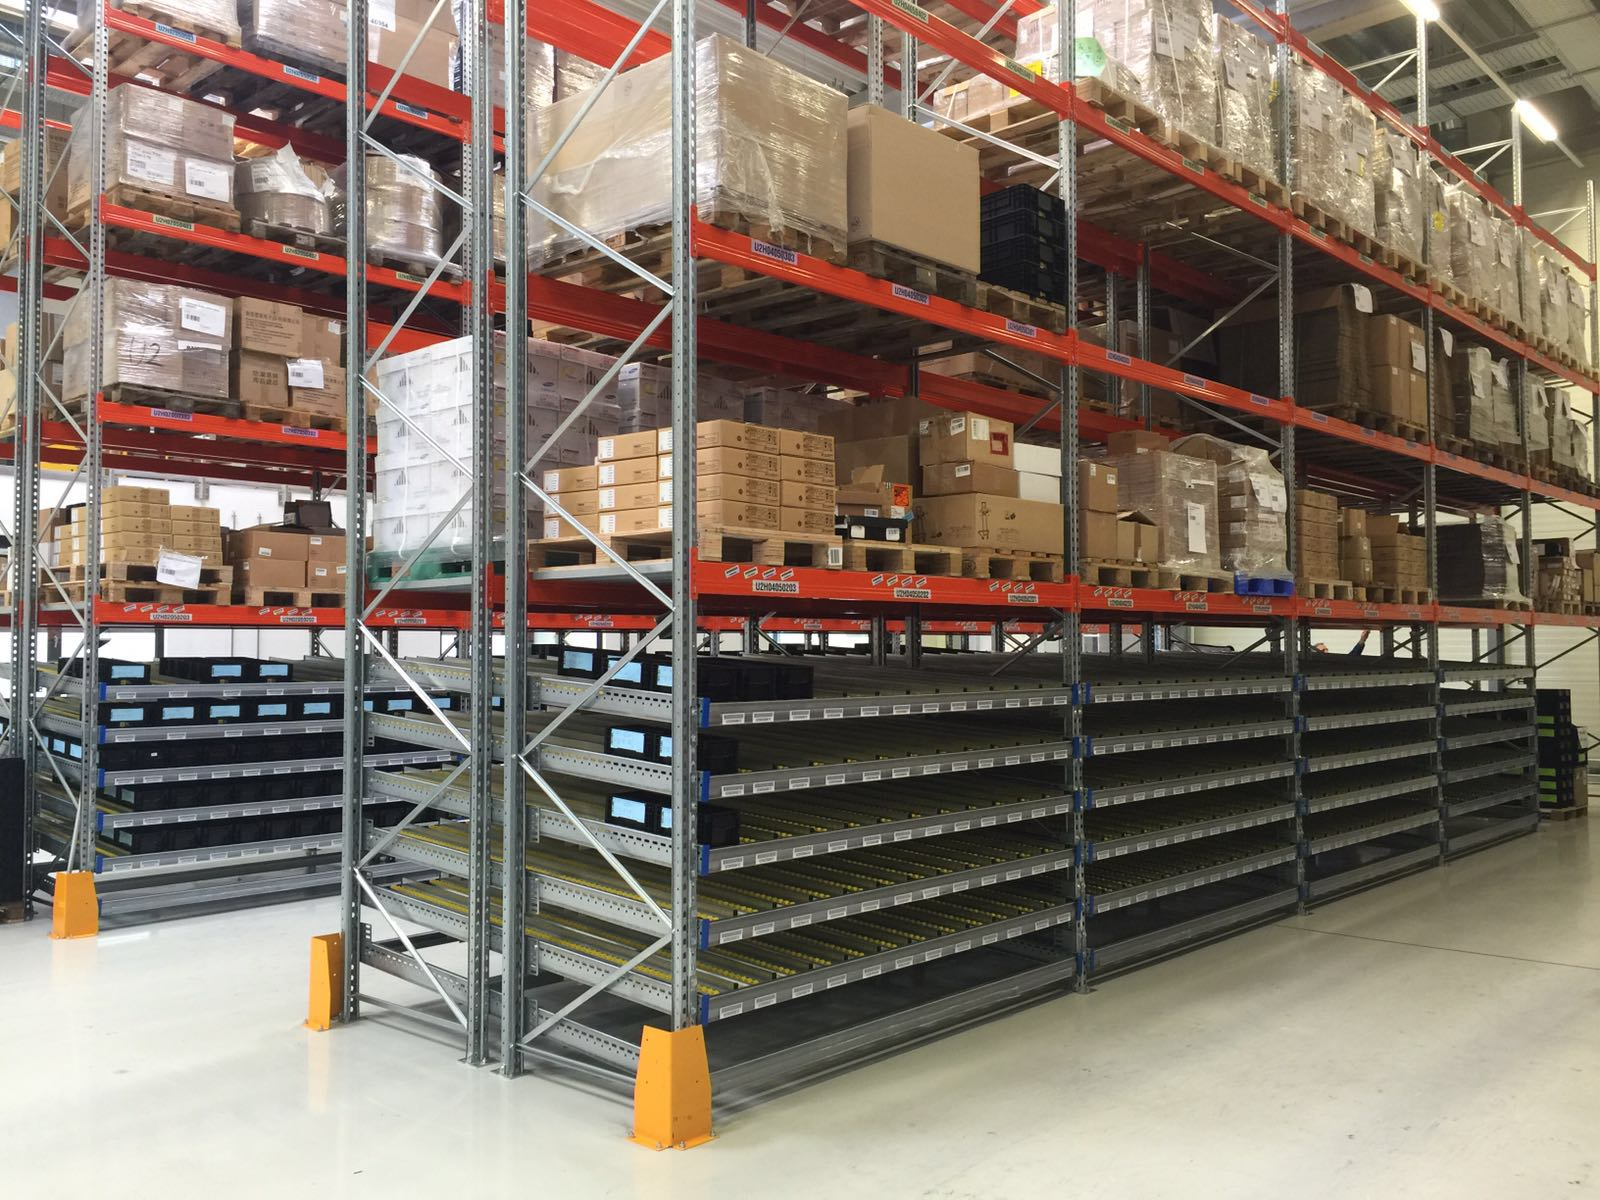 Pallets and boxes warehouse